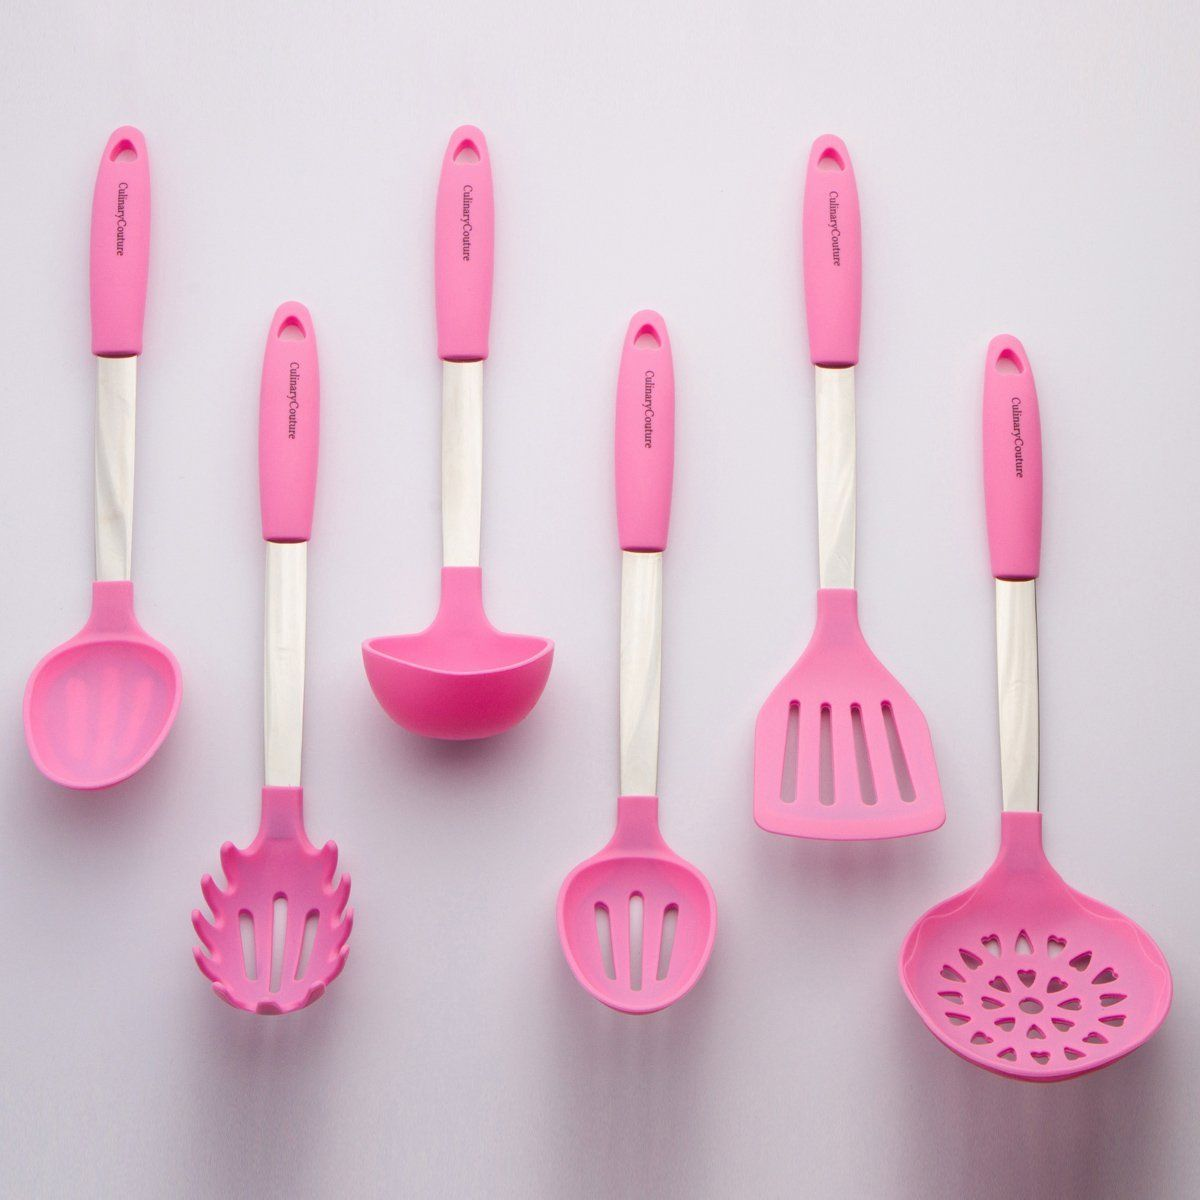 Culinary Couture Stainless Steel and Silicone Cooking Utensil Set ...